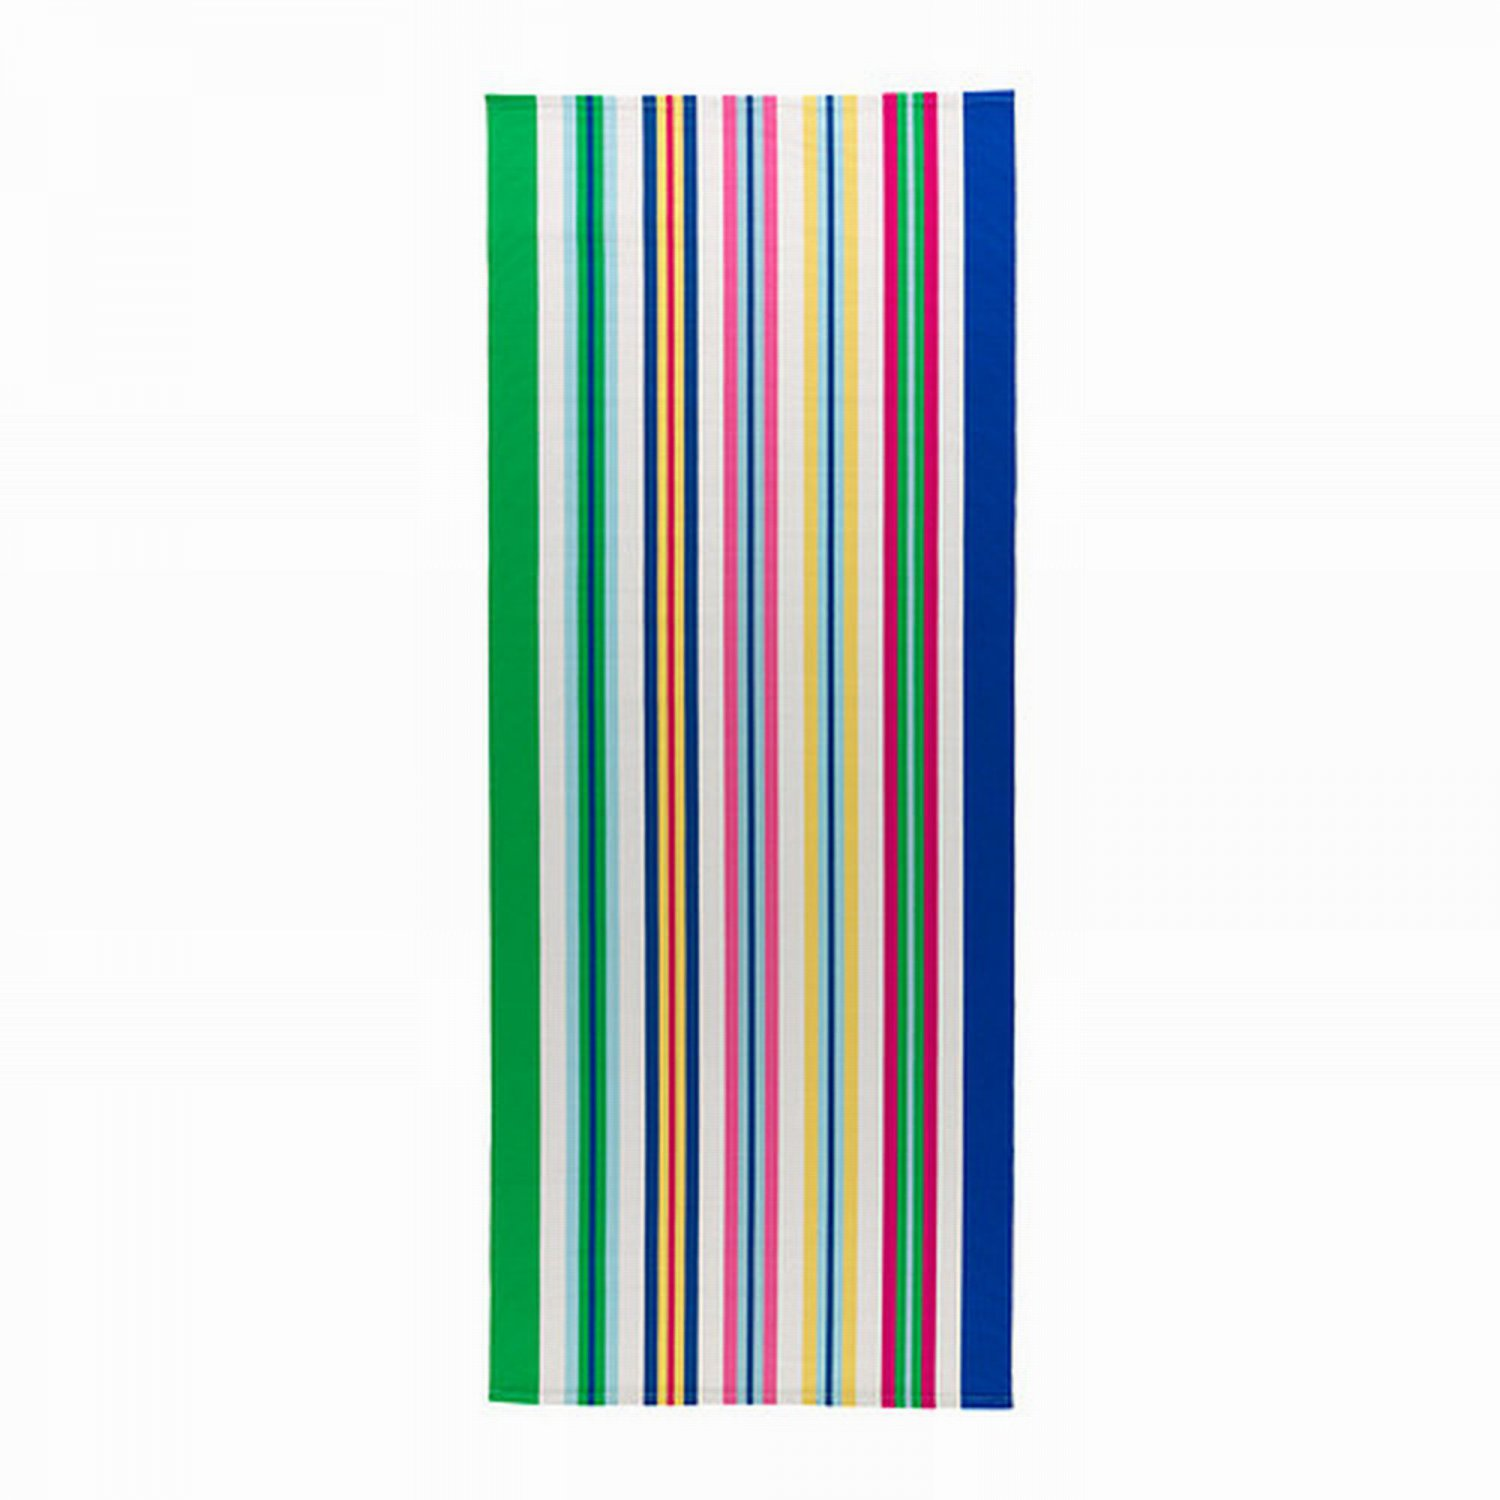 Ikea Barbro Rand Bright Stripes Area Throw Runner Rug Mat